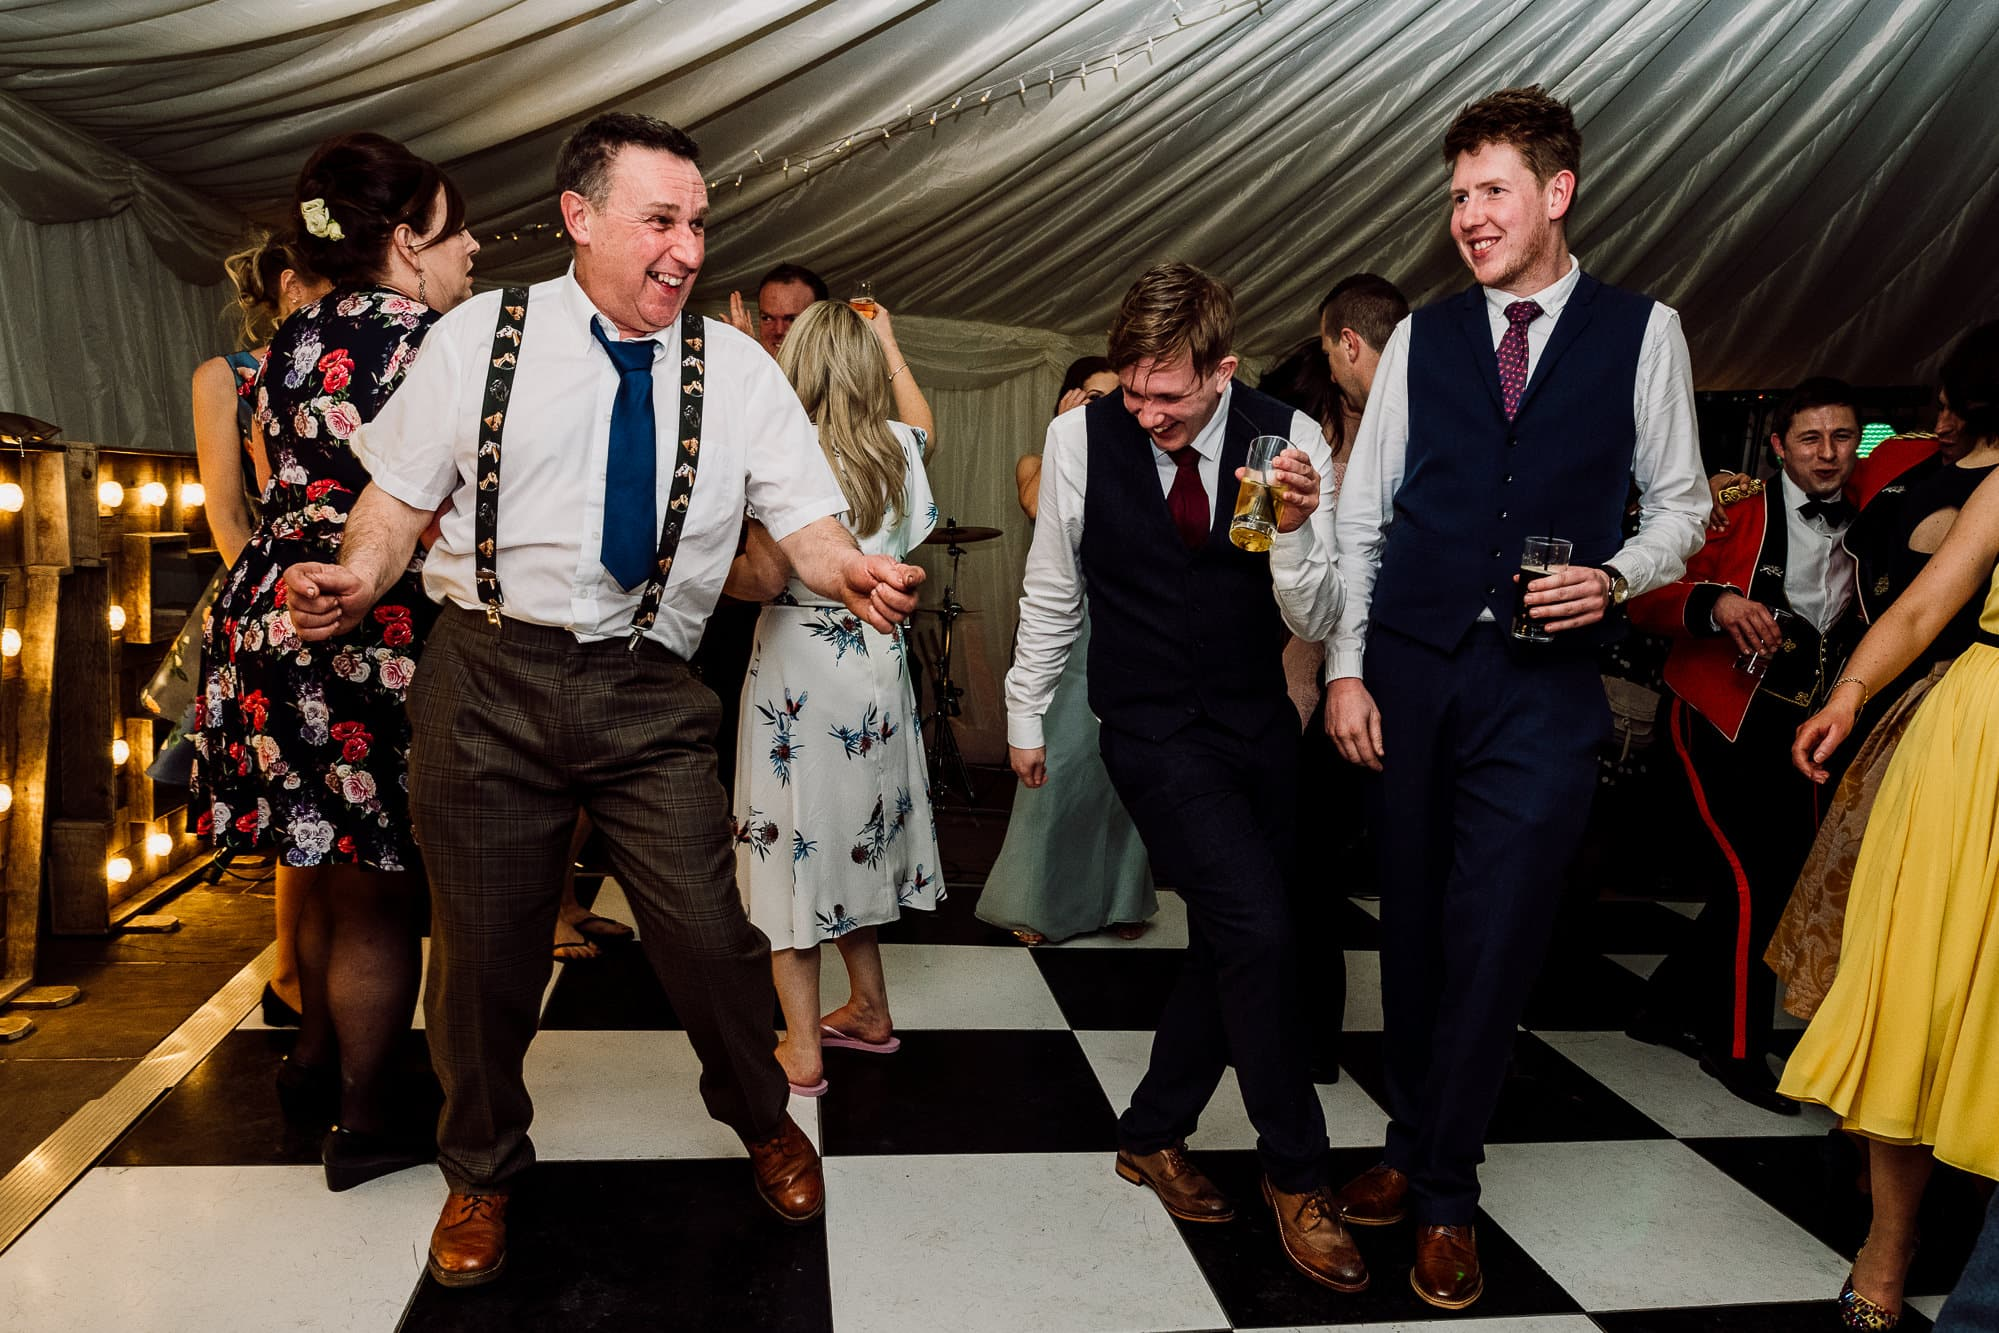 Father and his son dancing at the Inn at Whitewell